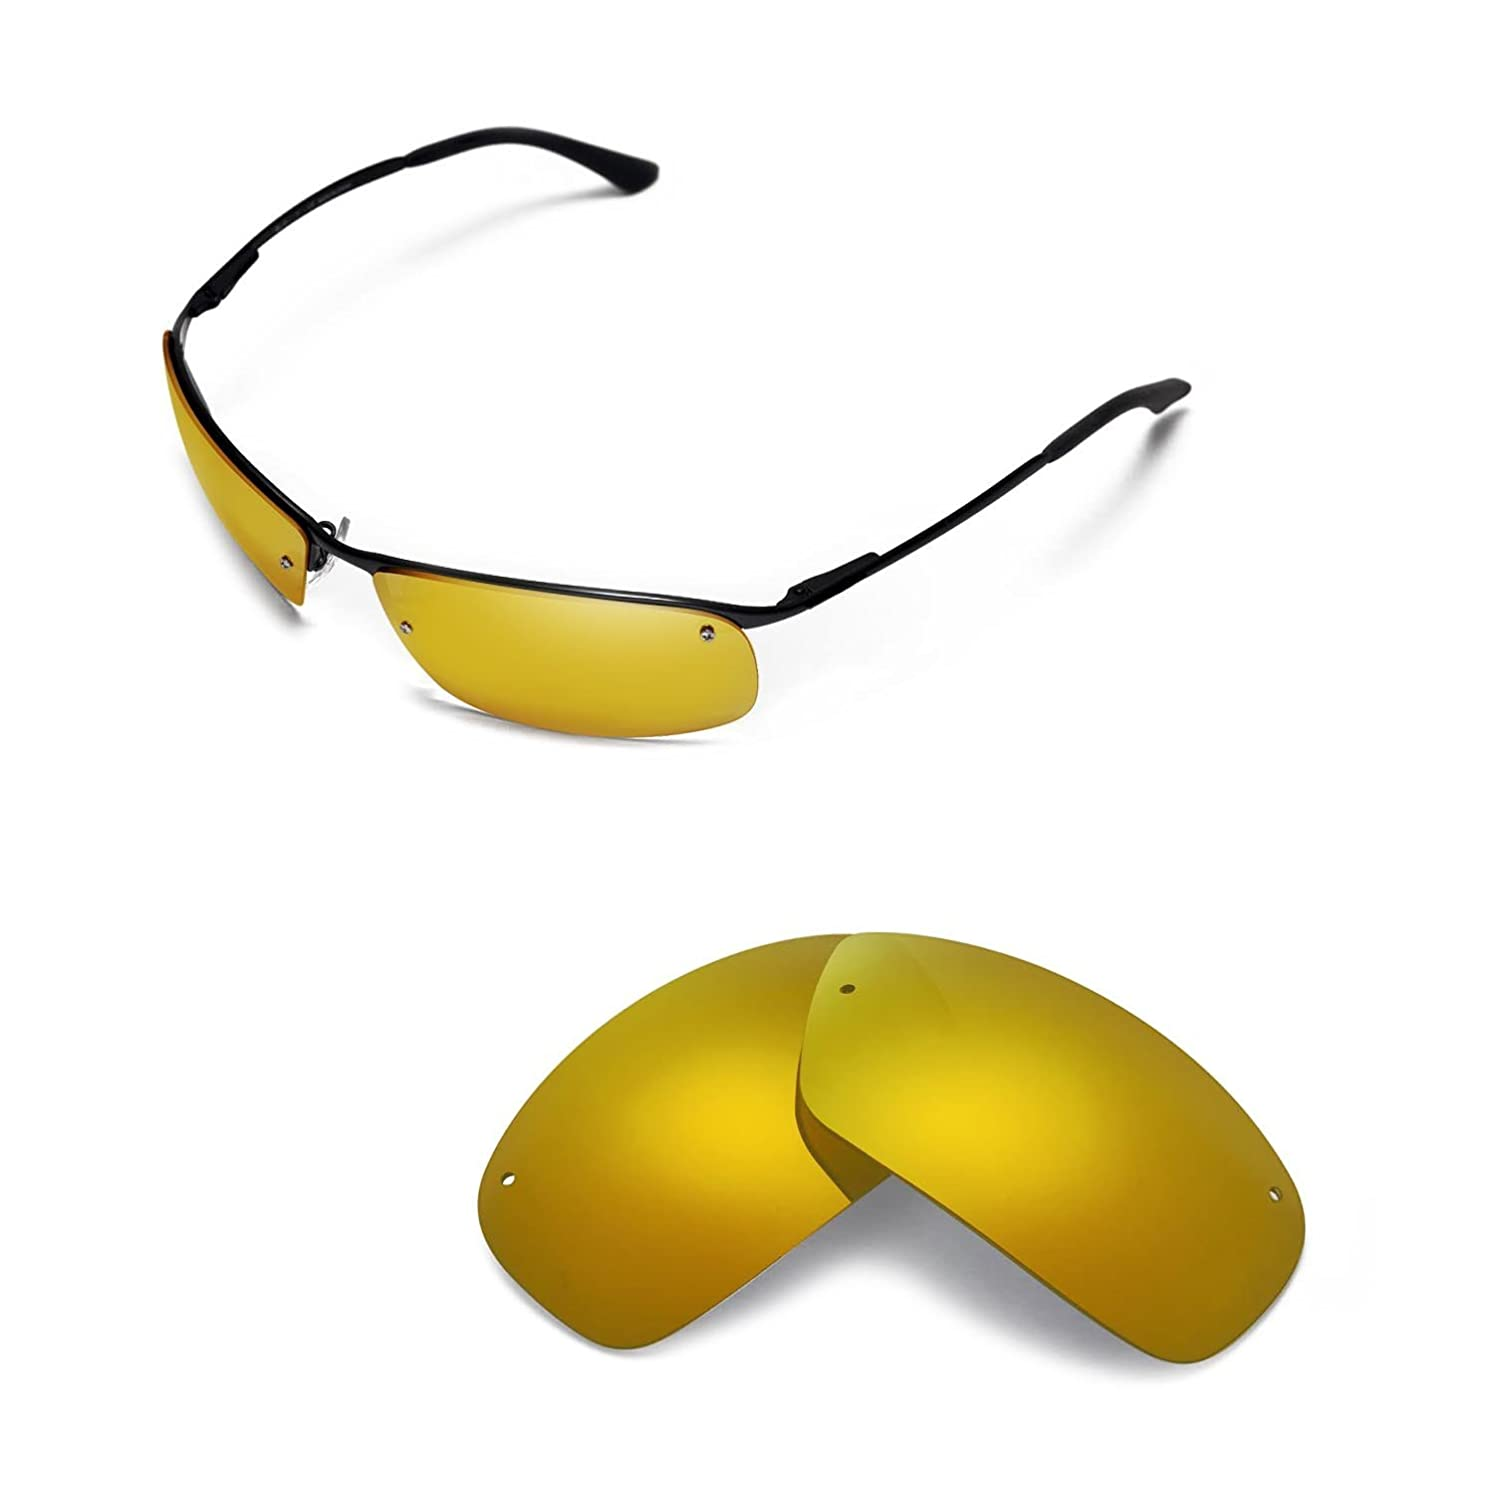 c14a78360ac Amazon.com  Walleva Replacement Lenses for Ray-Ban RB3183 63mm Sunglasses -  Multiple Options Available (24K Gold Mirror Coated - Polarized)  Sports    ...